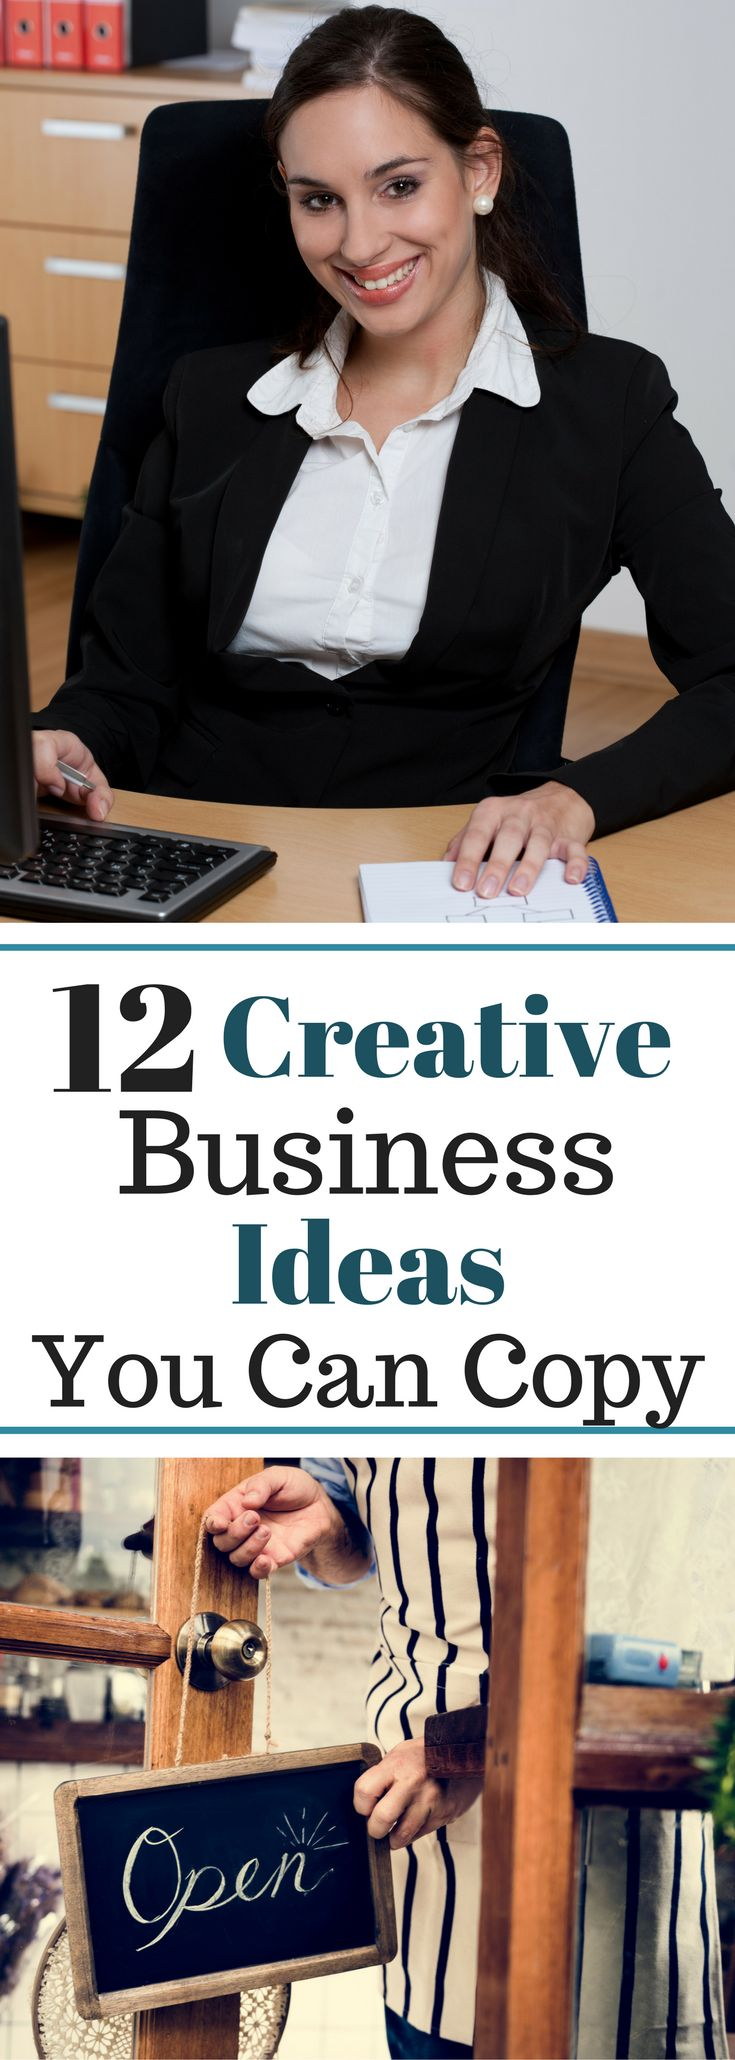 12 Creative Business Ideas You Can Copy Start Your Business Today